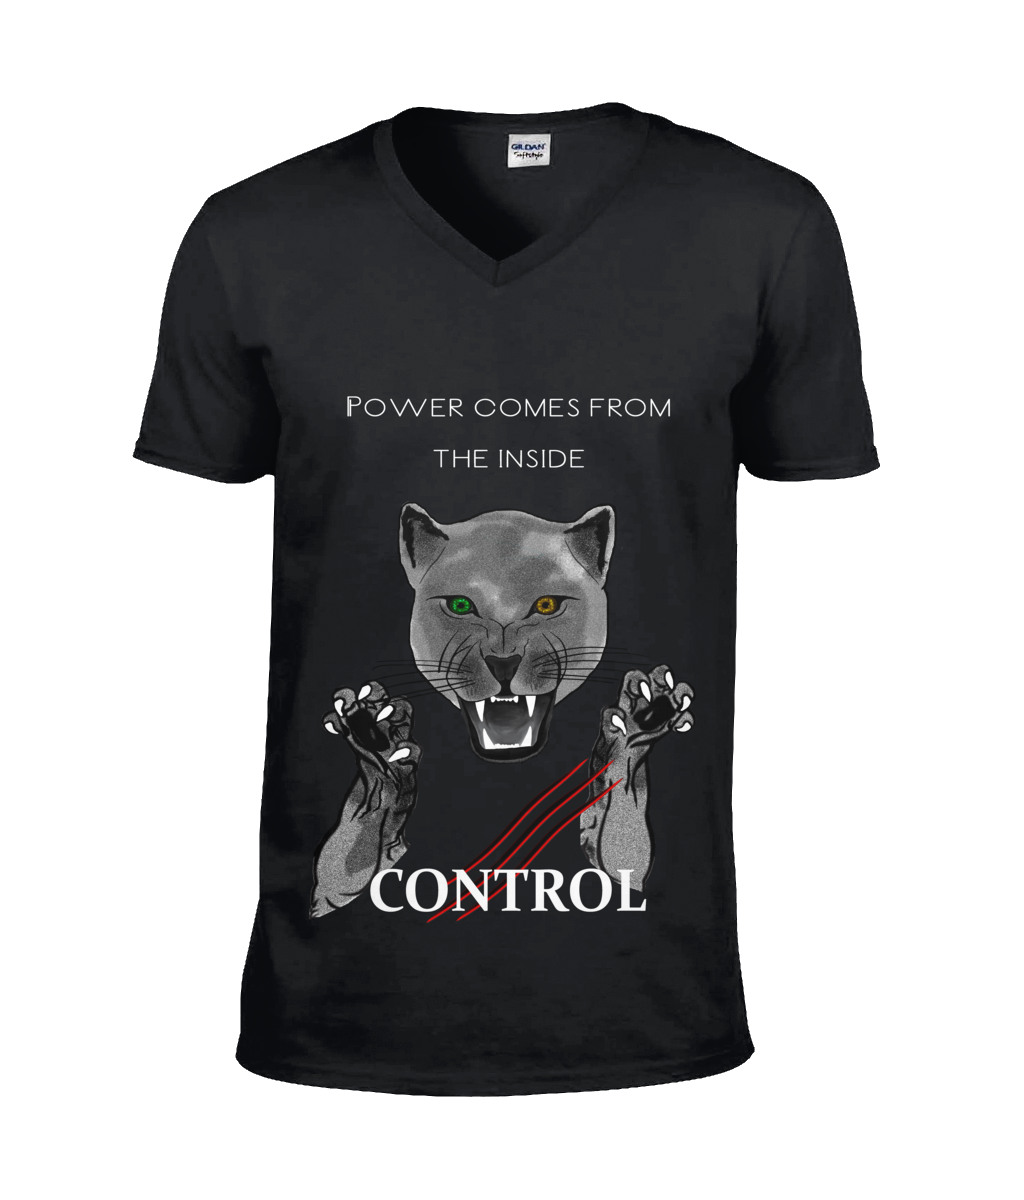 Control yourself - T-shirt V-neck